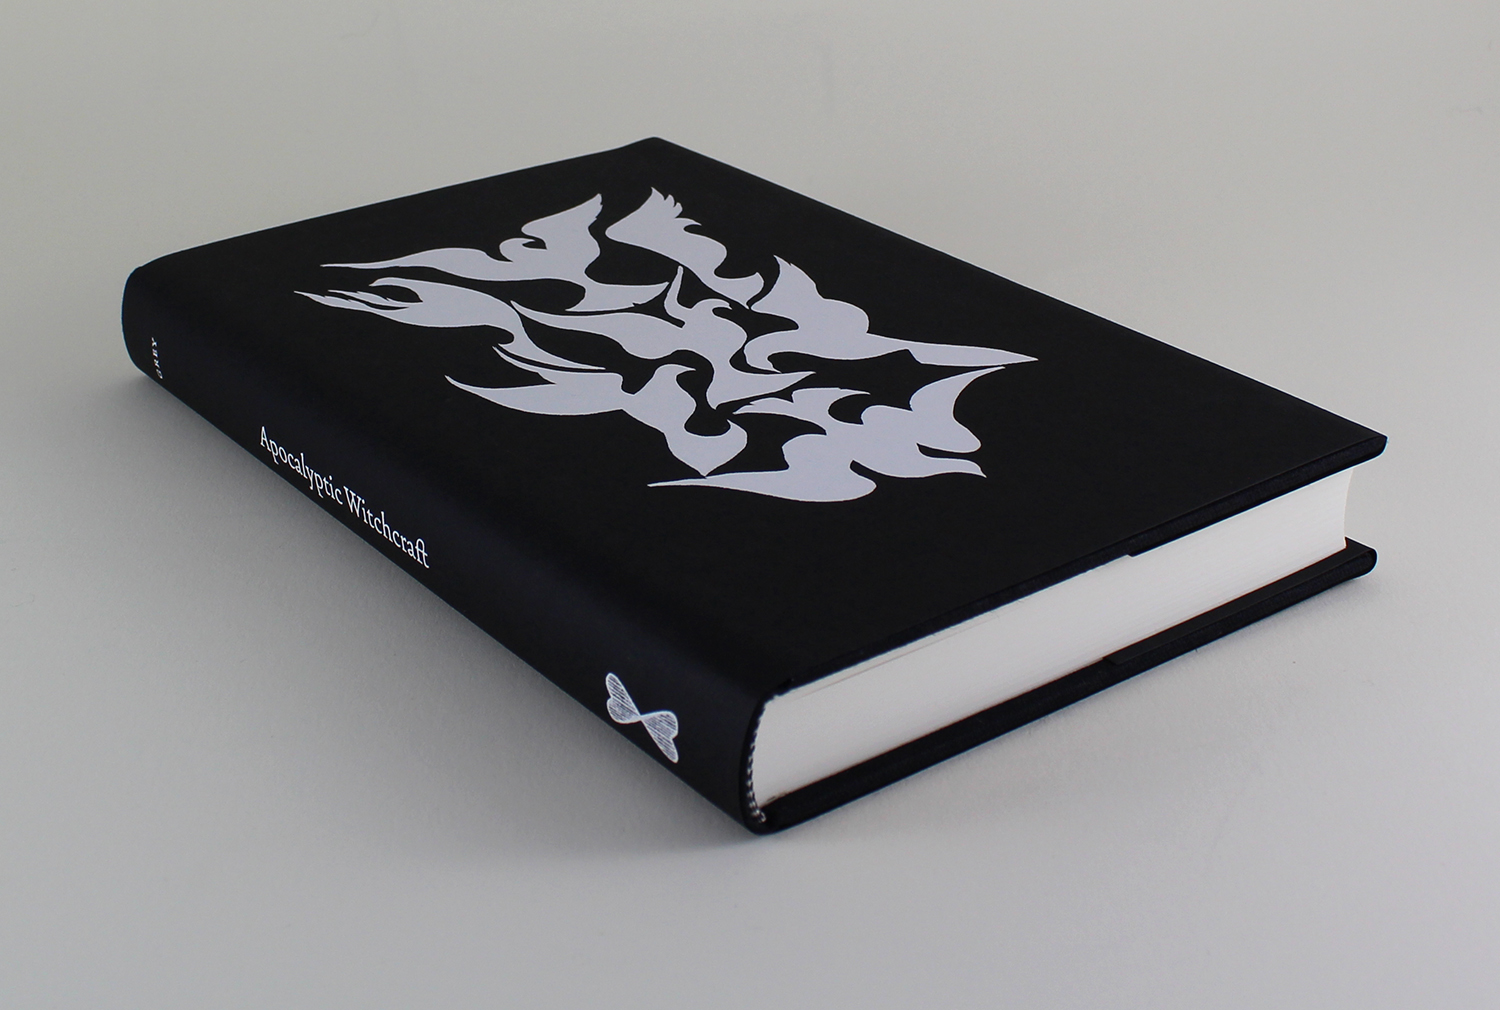 The standard edition, with dustjacket